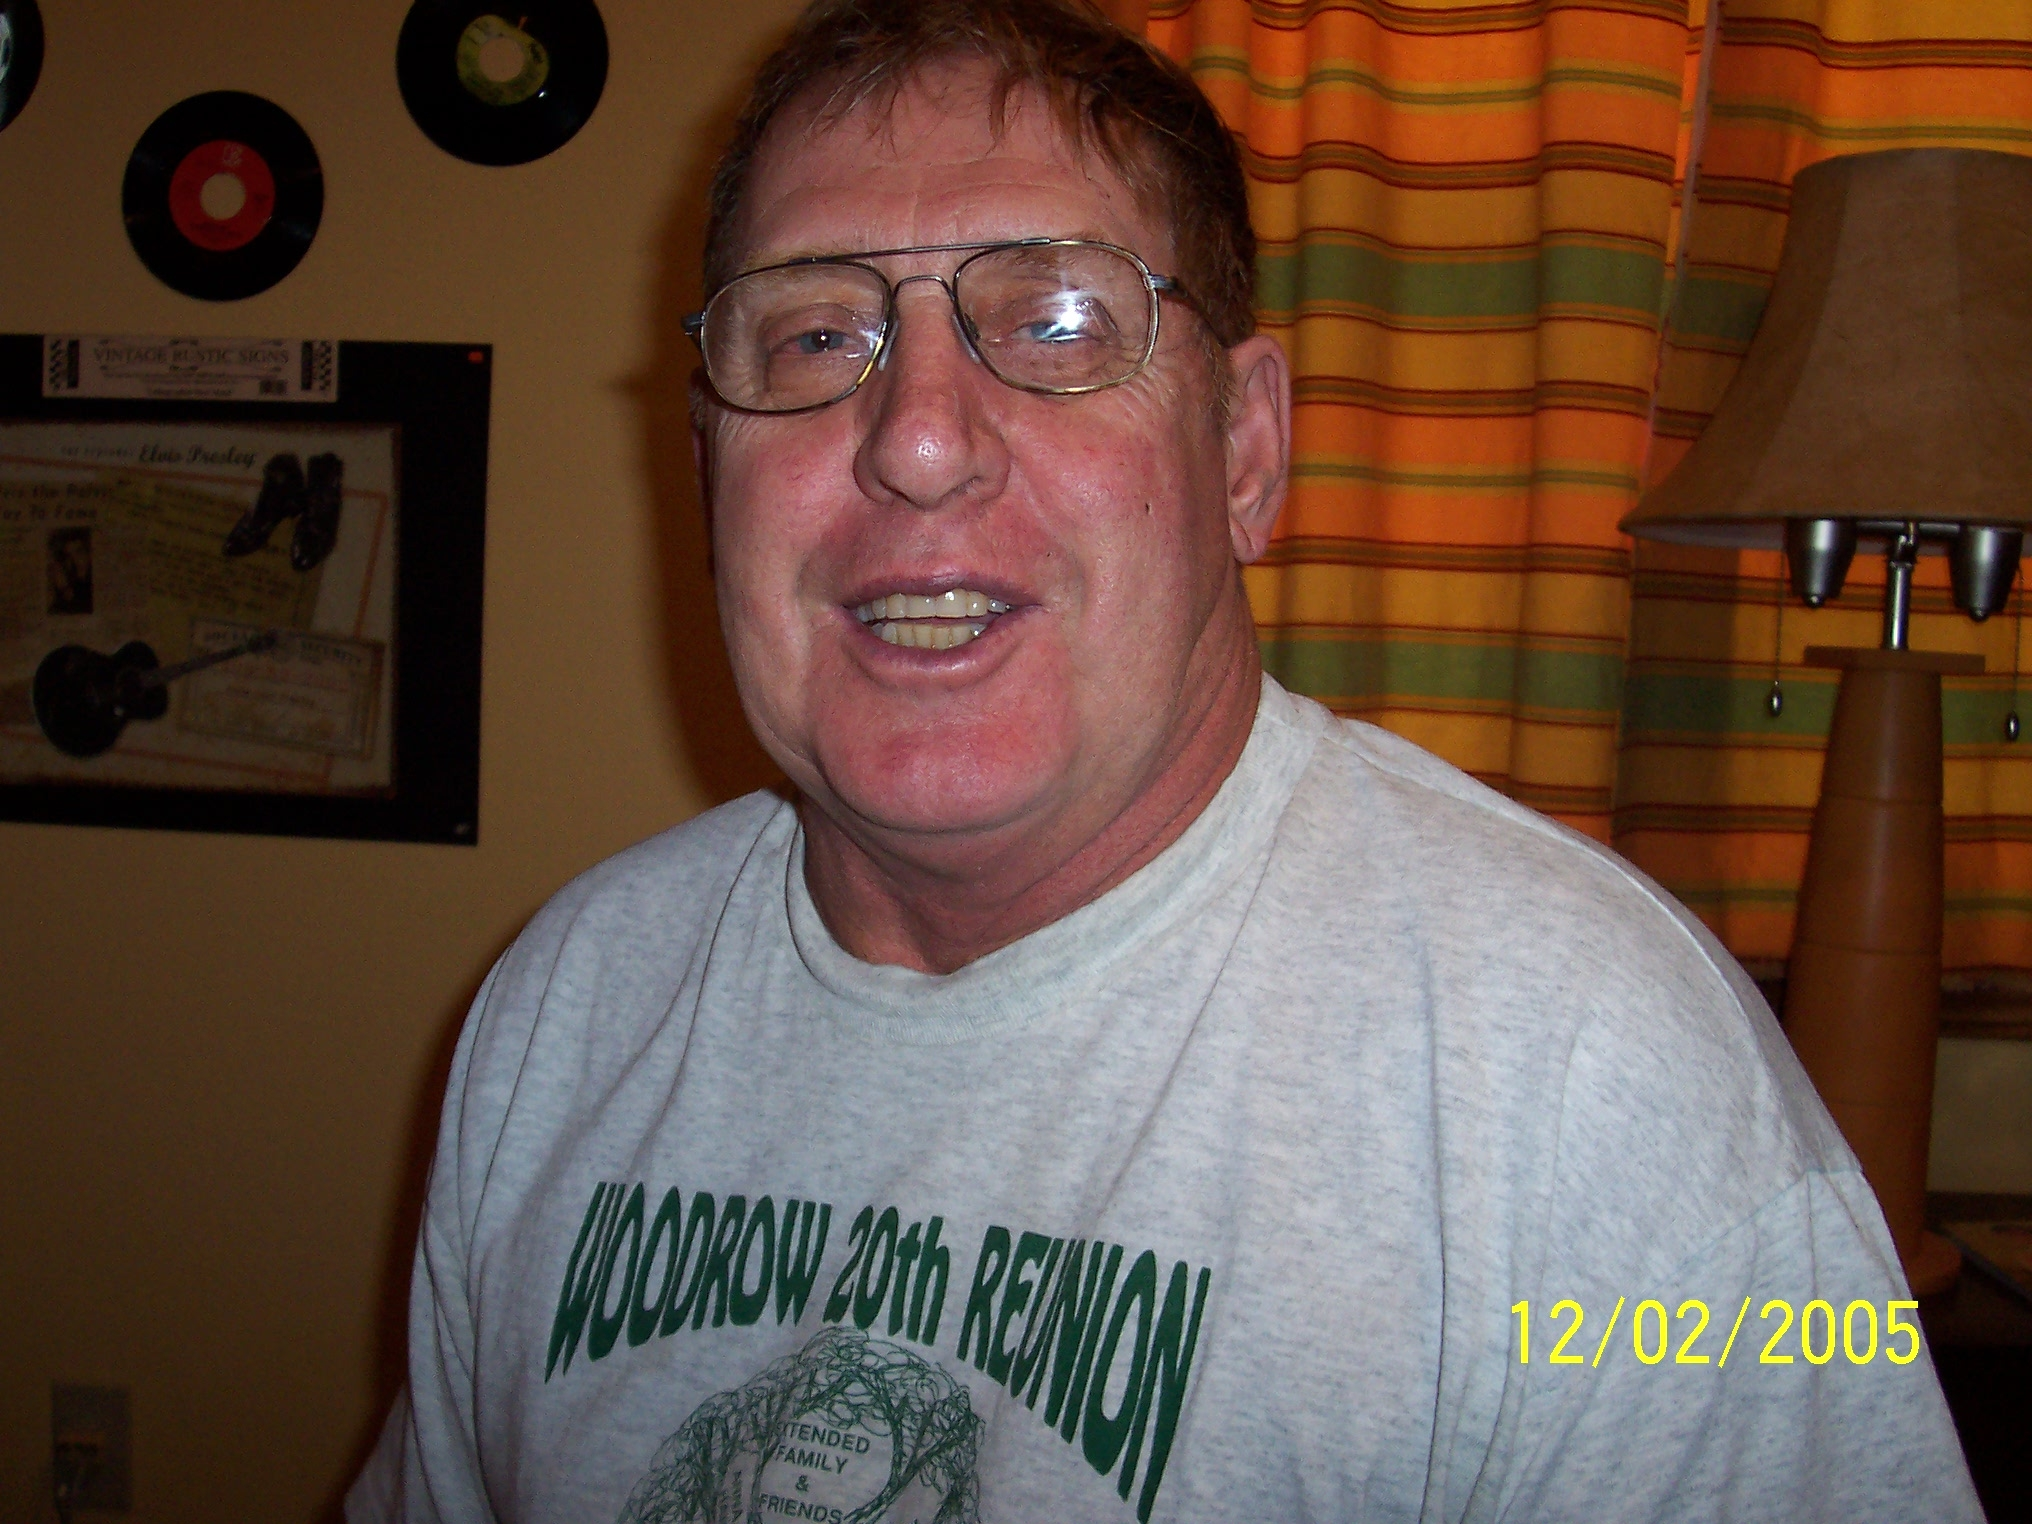 Minnesota Missing Person Notices-Minnesota Missing Person Notice Website-Leroy Keith Boyd